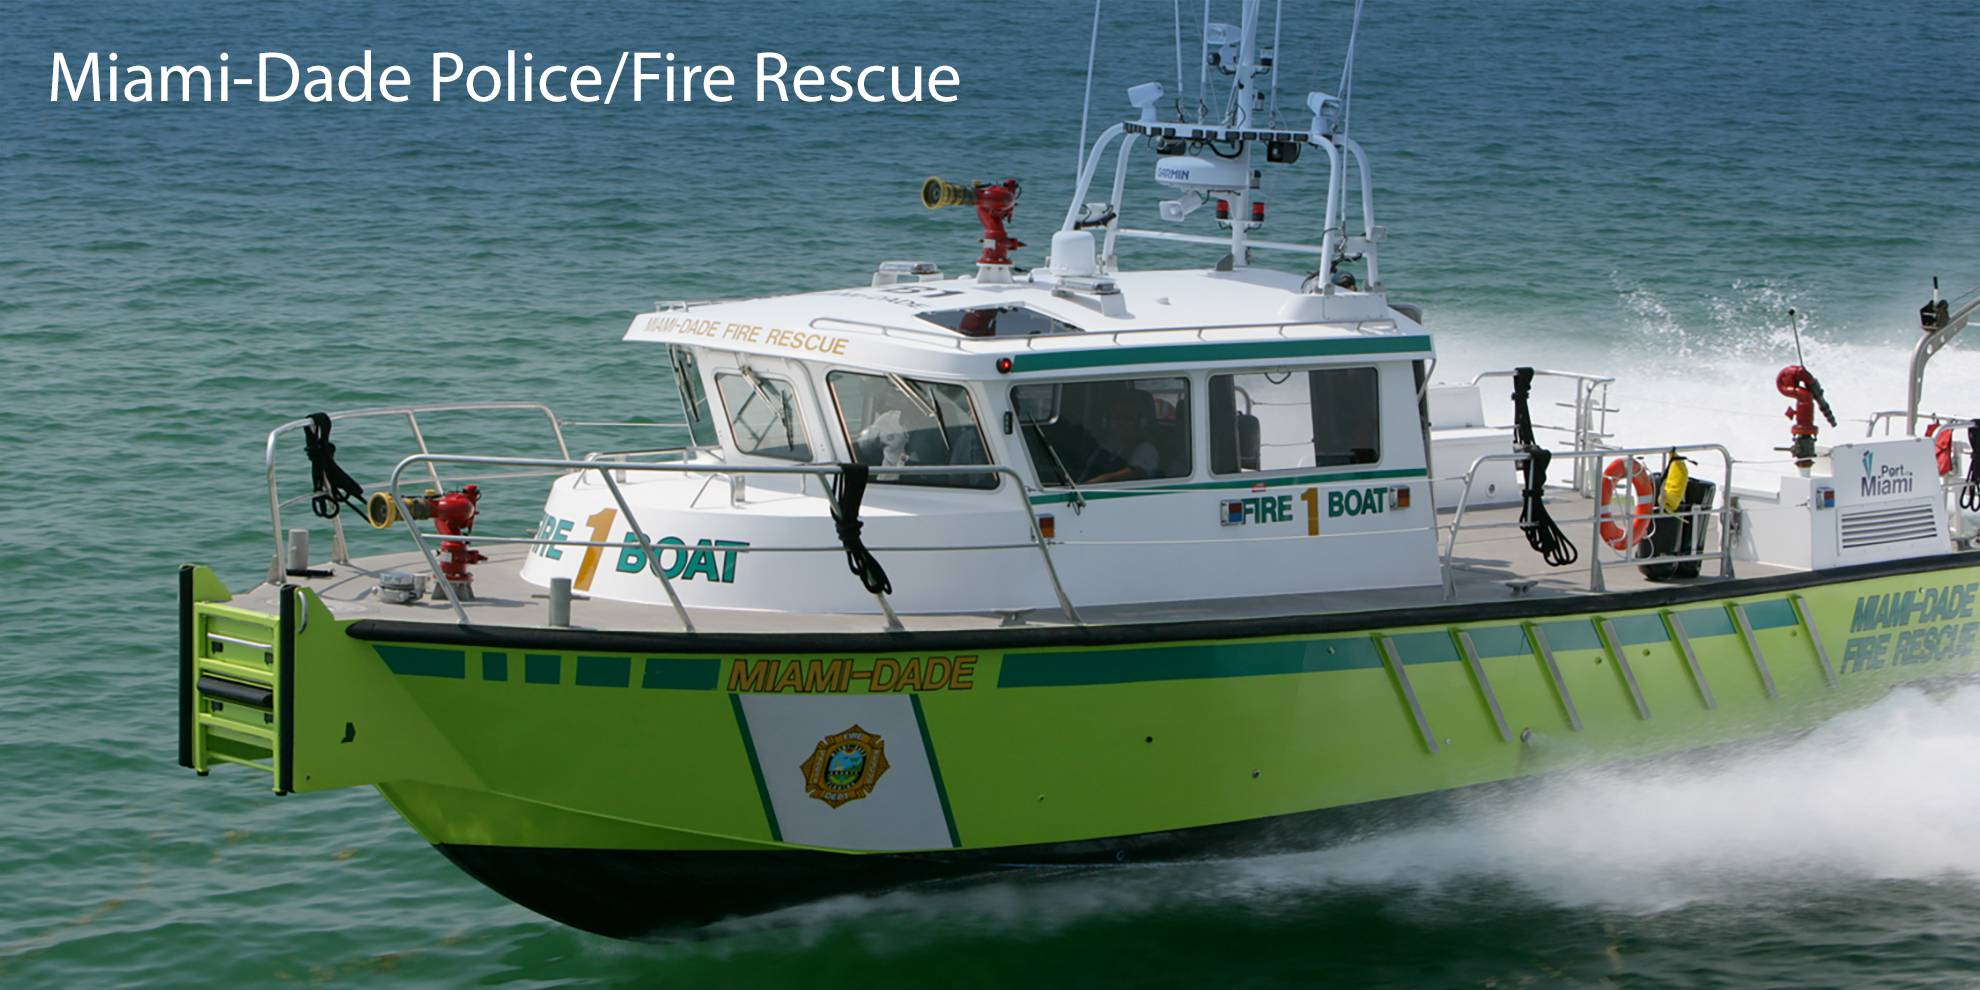 Miami-Dade Police/Fire Rescue